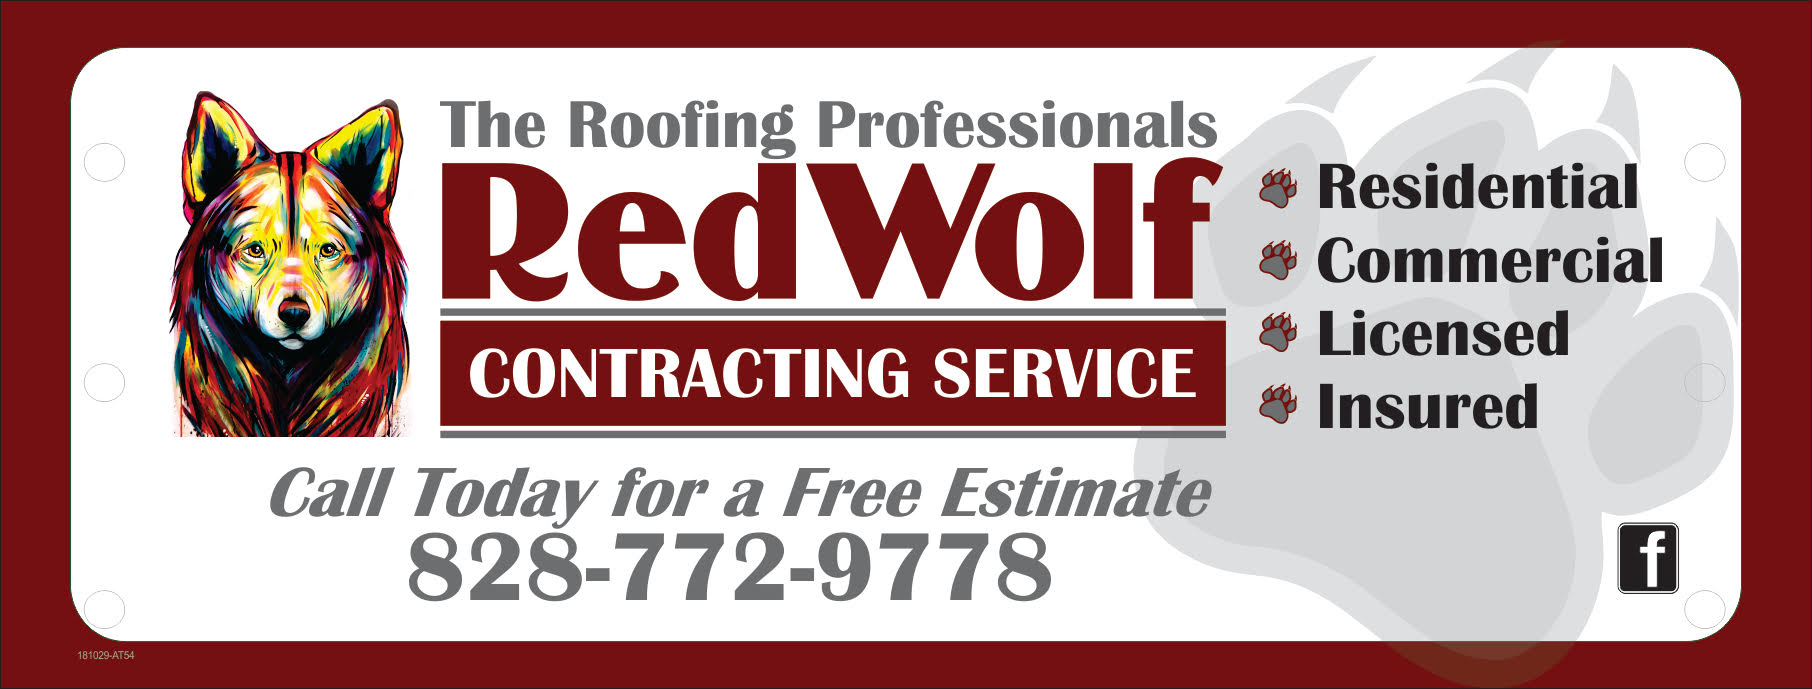 Contact my trusted roofing source Matt at RedWolf Contracting Services to take care of all of your roof replacements.  From shingles, to metal roofing, and even commercial rubber membrane, Matt has the resources and solutions to take care of your job in a professional and cost effective manner.  Call (828) 772-9778 or visit  nc-roofers.com  to set up your free roof inspection.